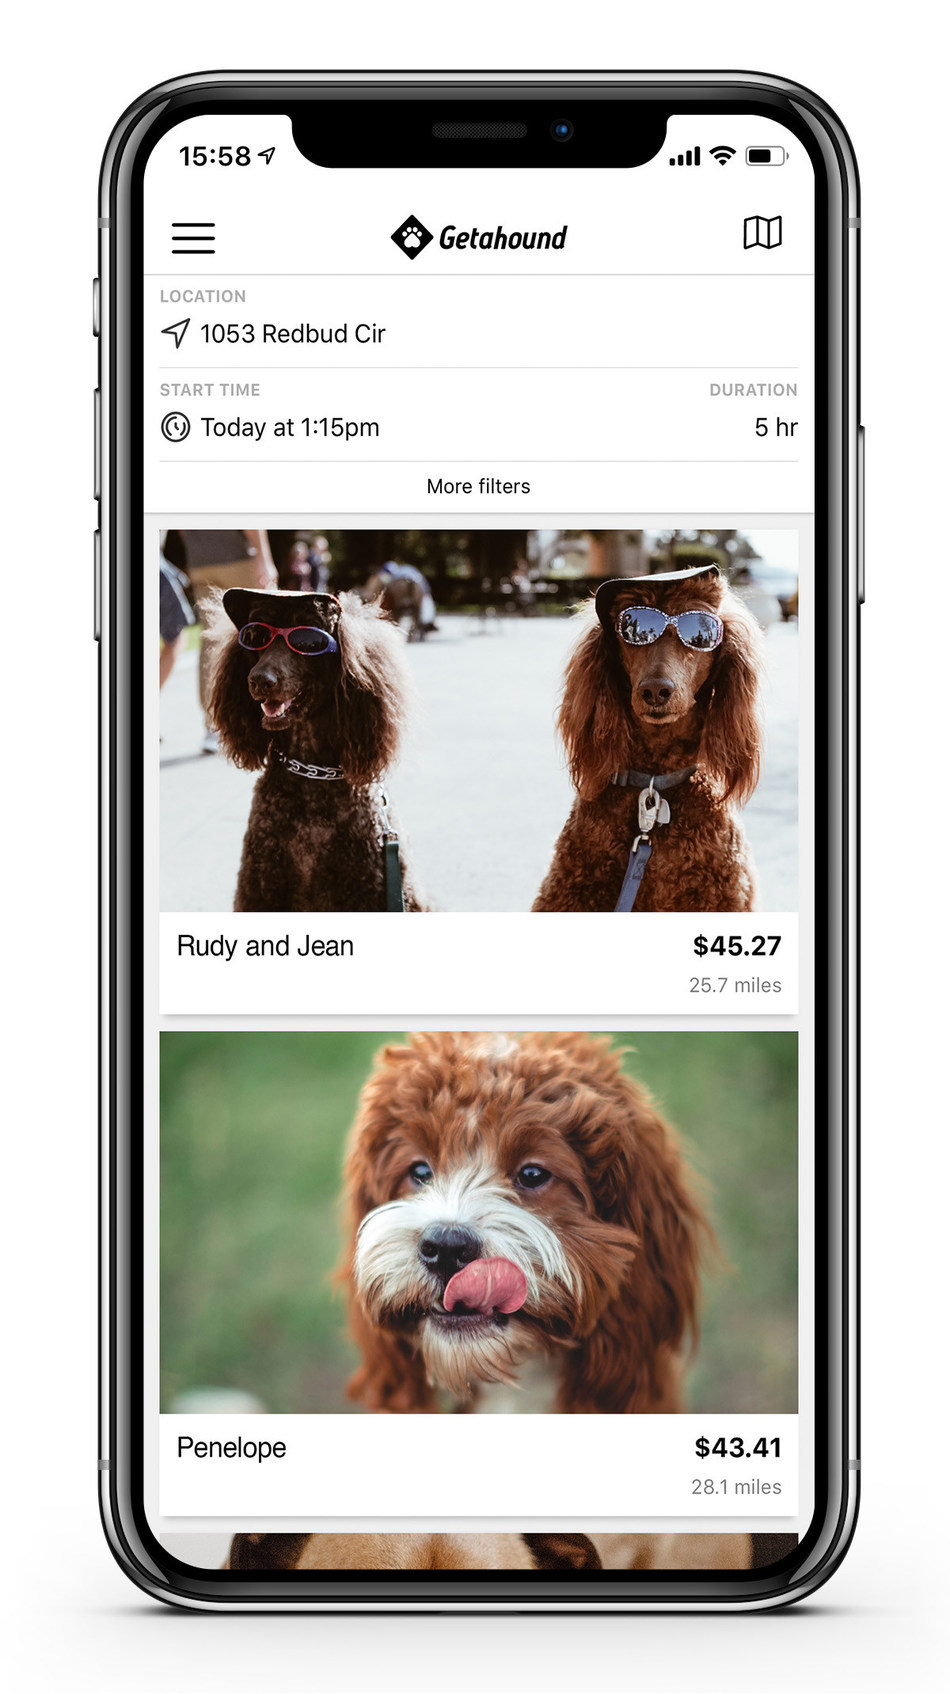 People who live dog-free or who need the perfect dog will be able to instantly rent dogs nearby - by the hour or day - through the Getahound iOS or Android applications.